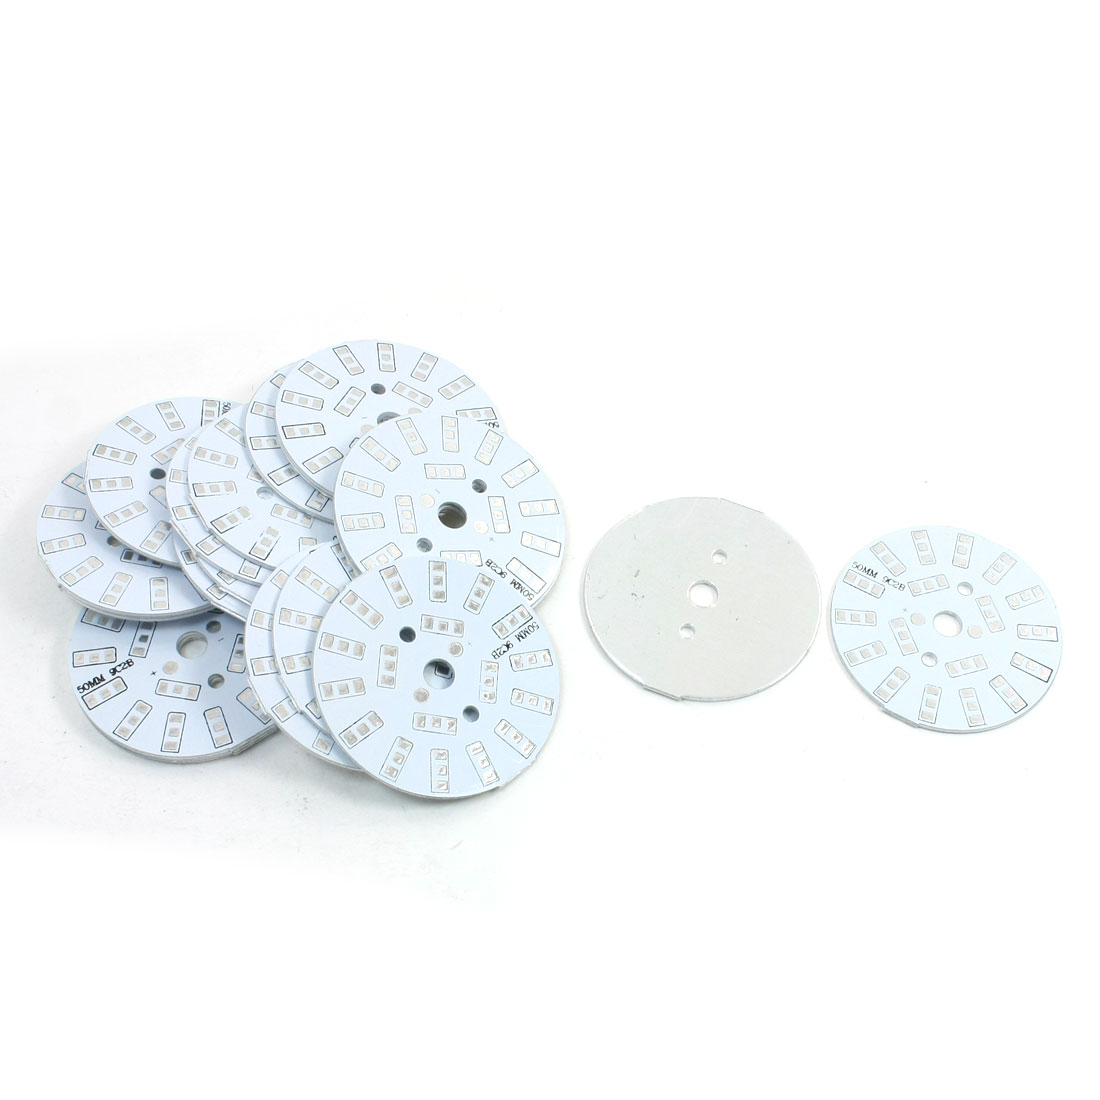 20Pcs 18 x 1/2W 5730 SMD LED High Power DIY Circle Aluminum PCB Circuit Board 50mm Diameter